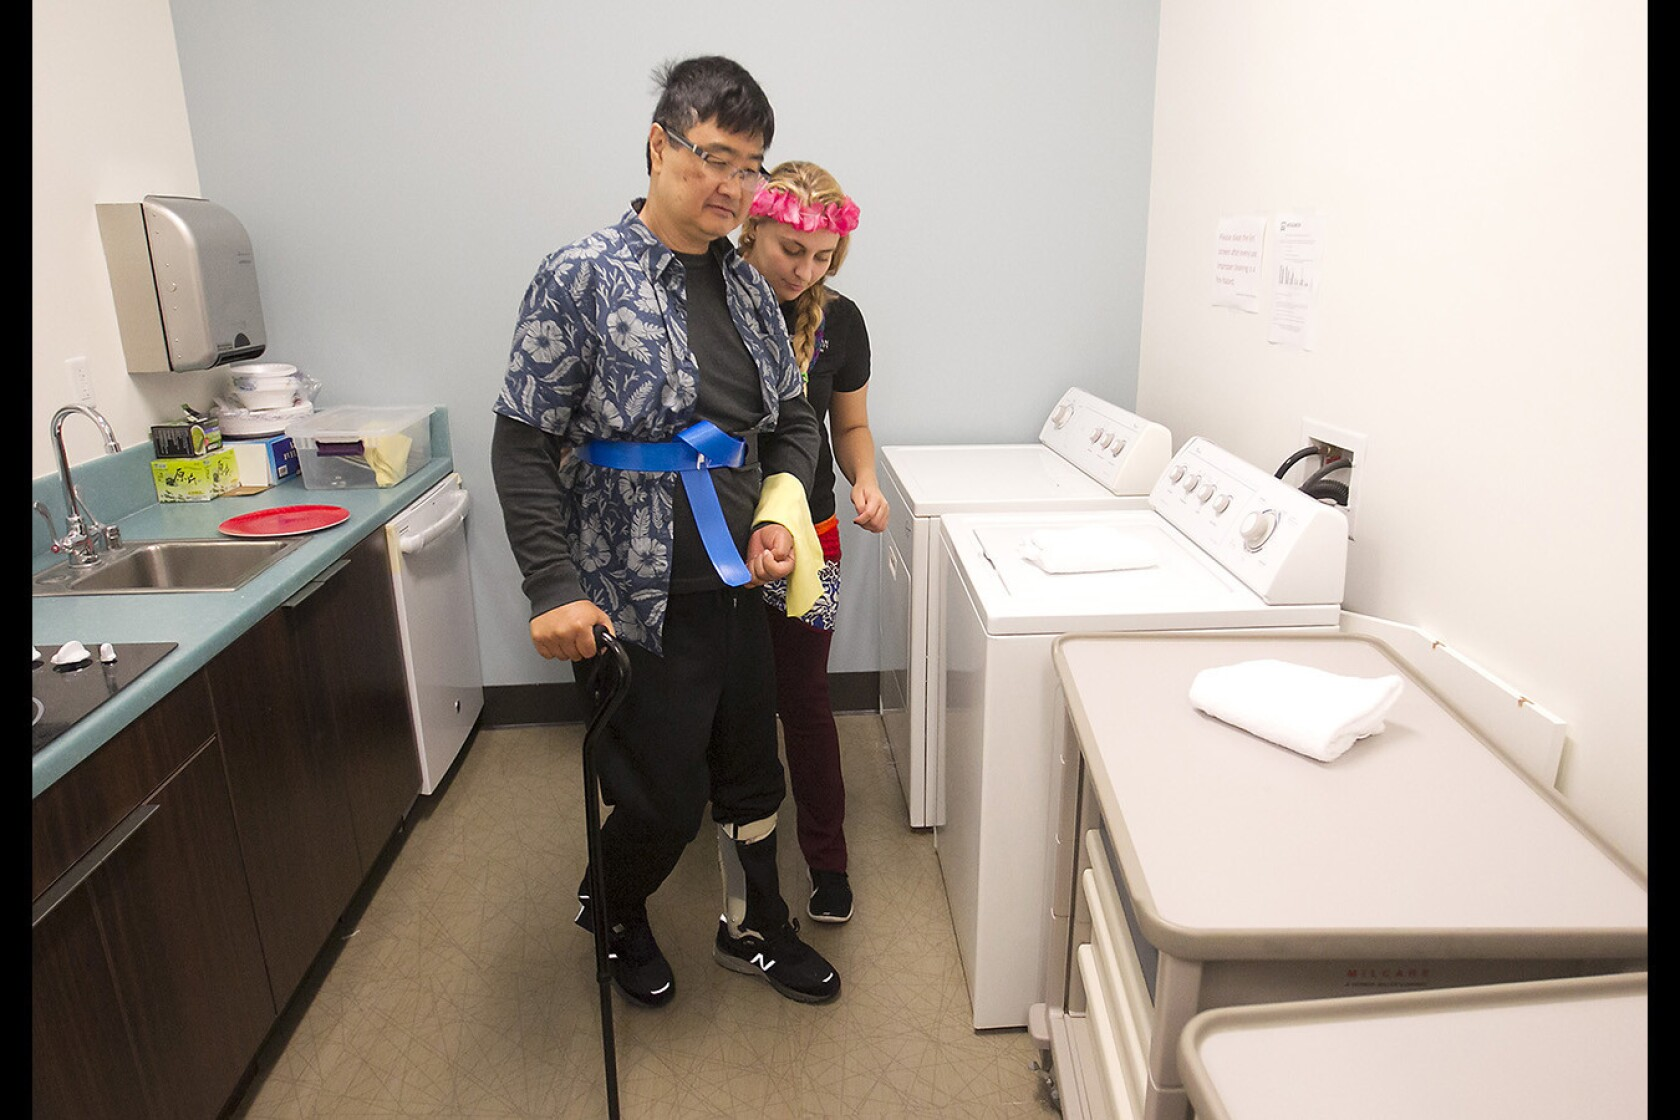 Chapman University's stroke recovery boot camp helps patients in fun